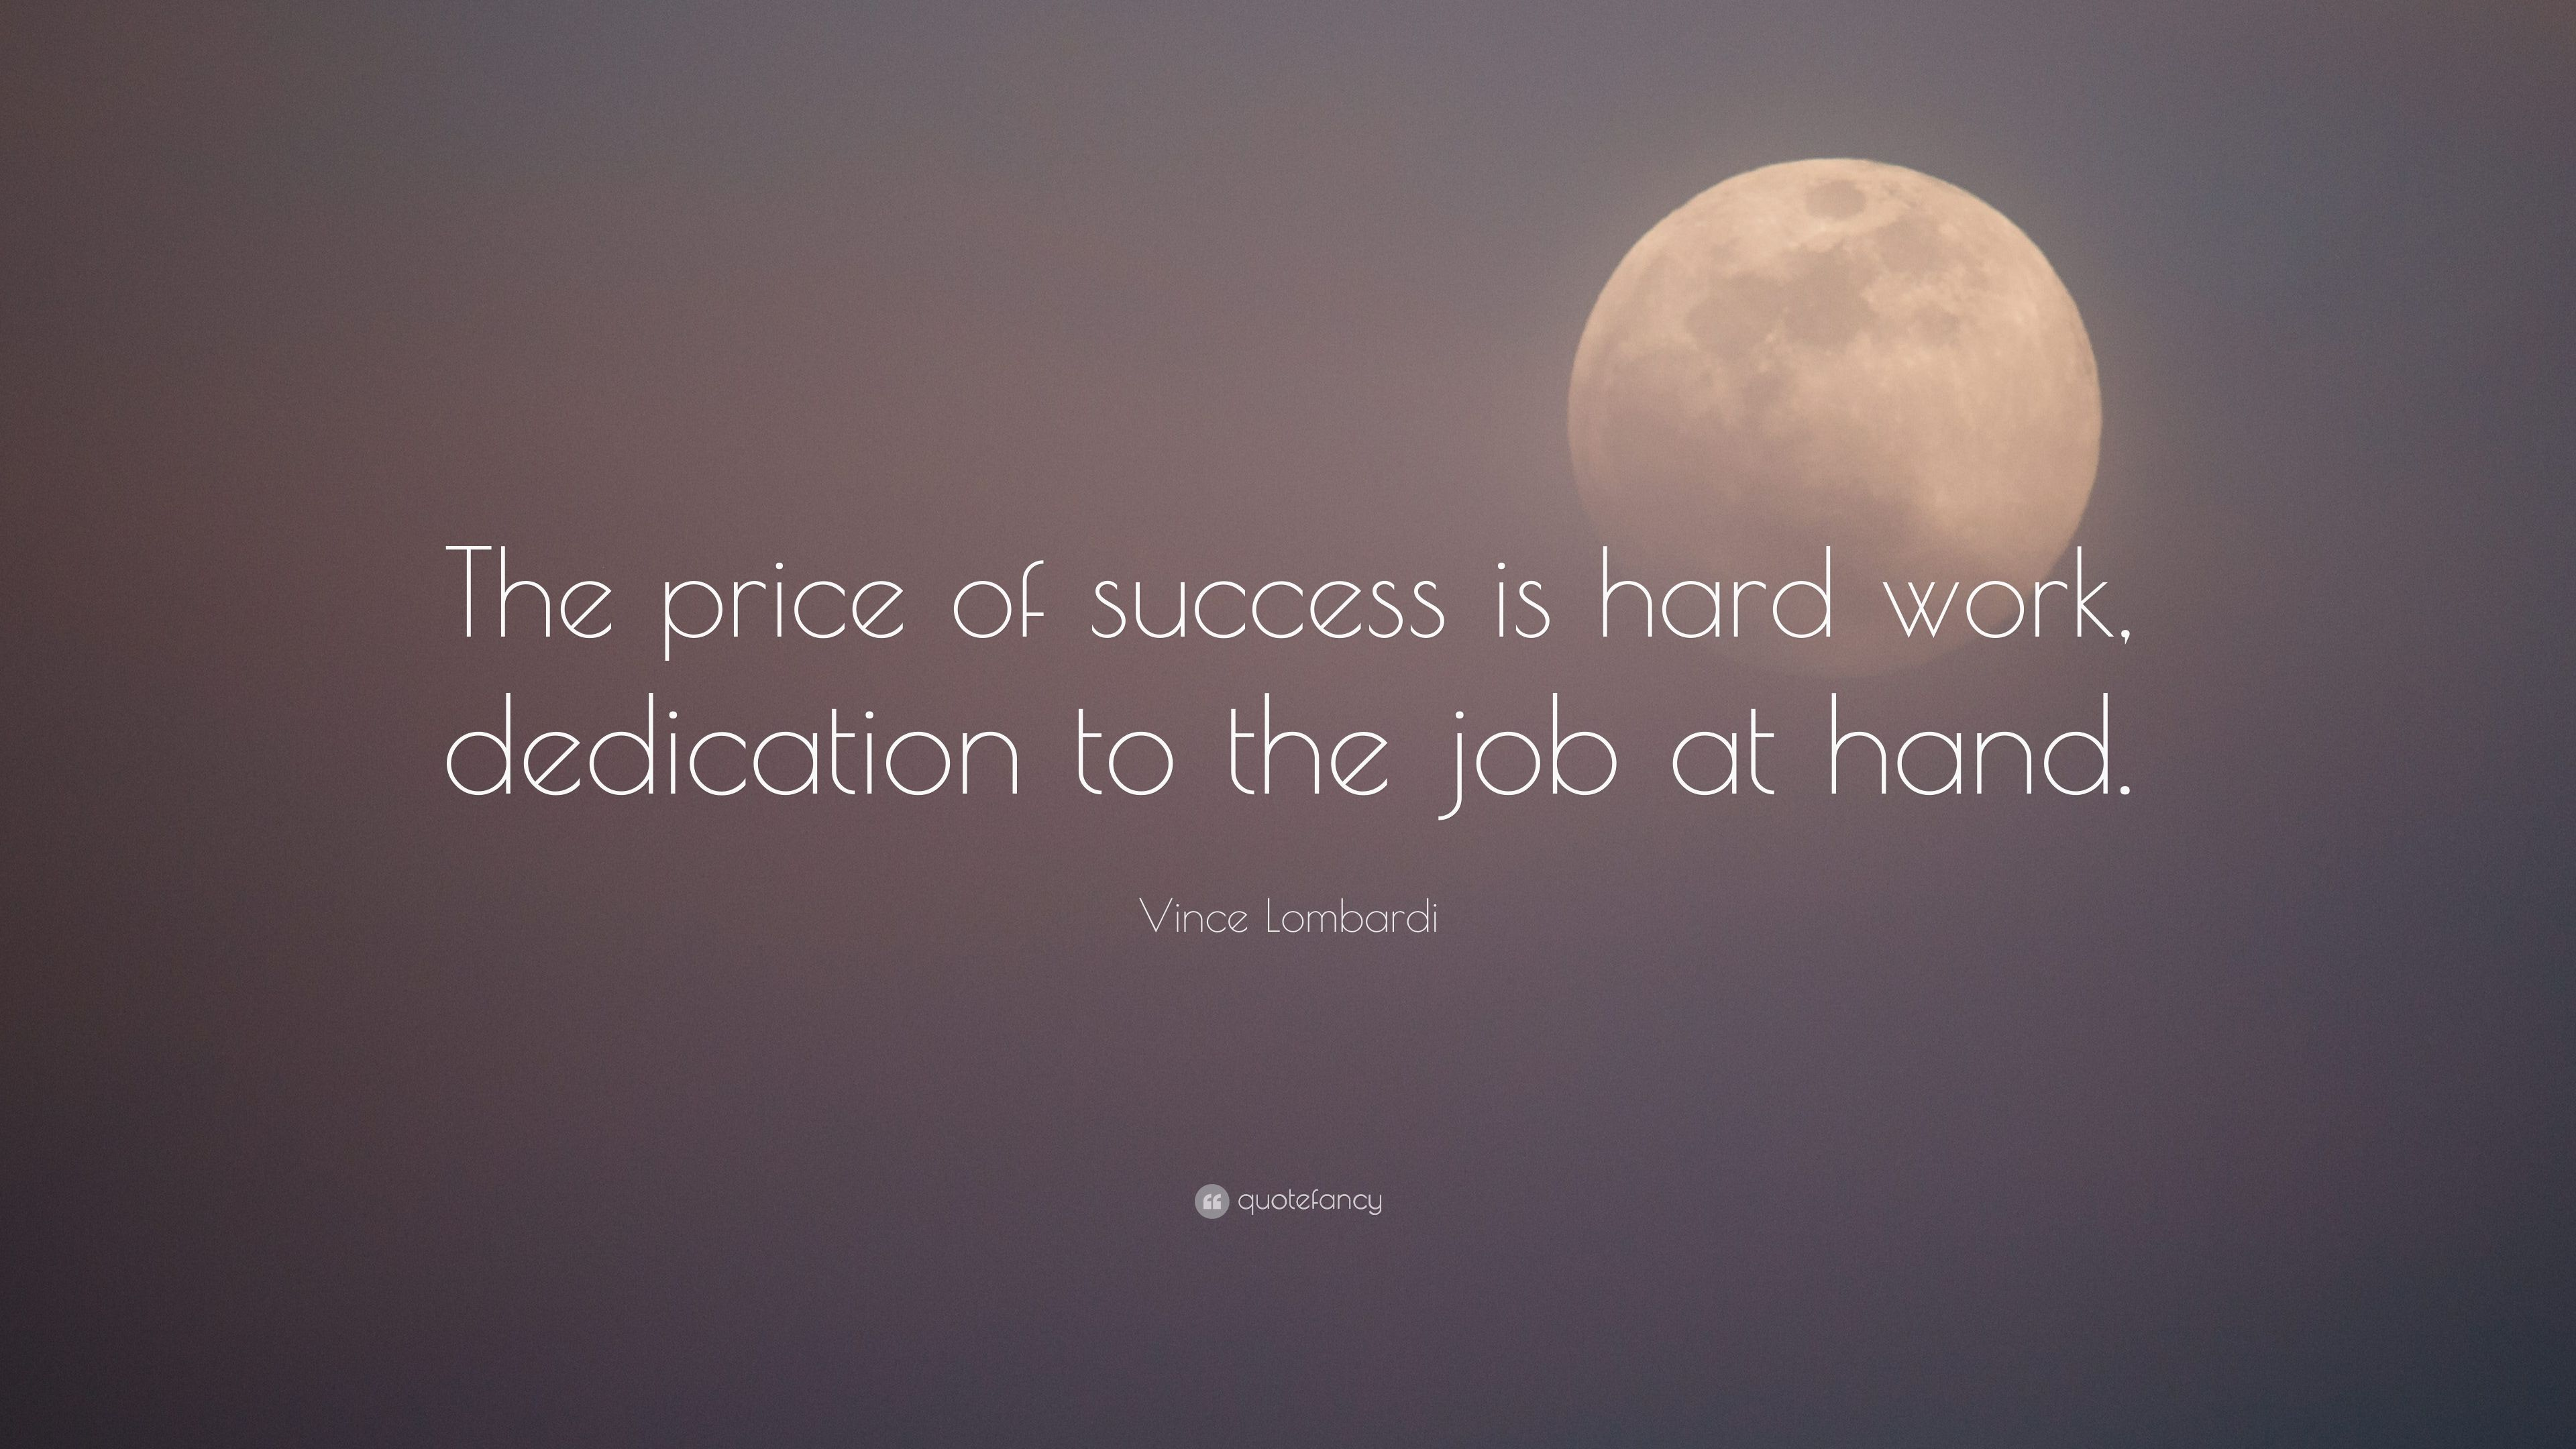 """Thank You Quotes For Hard Work And Dedication: Vince Lombardi Quote: """"The Price Of Success Is Hard Work"""